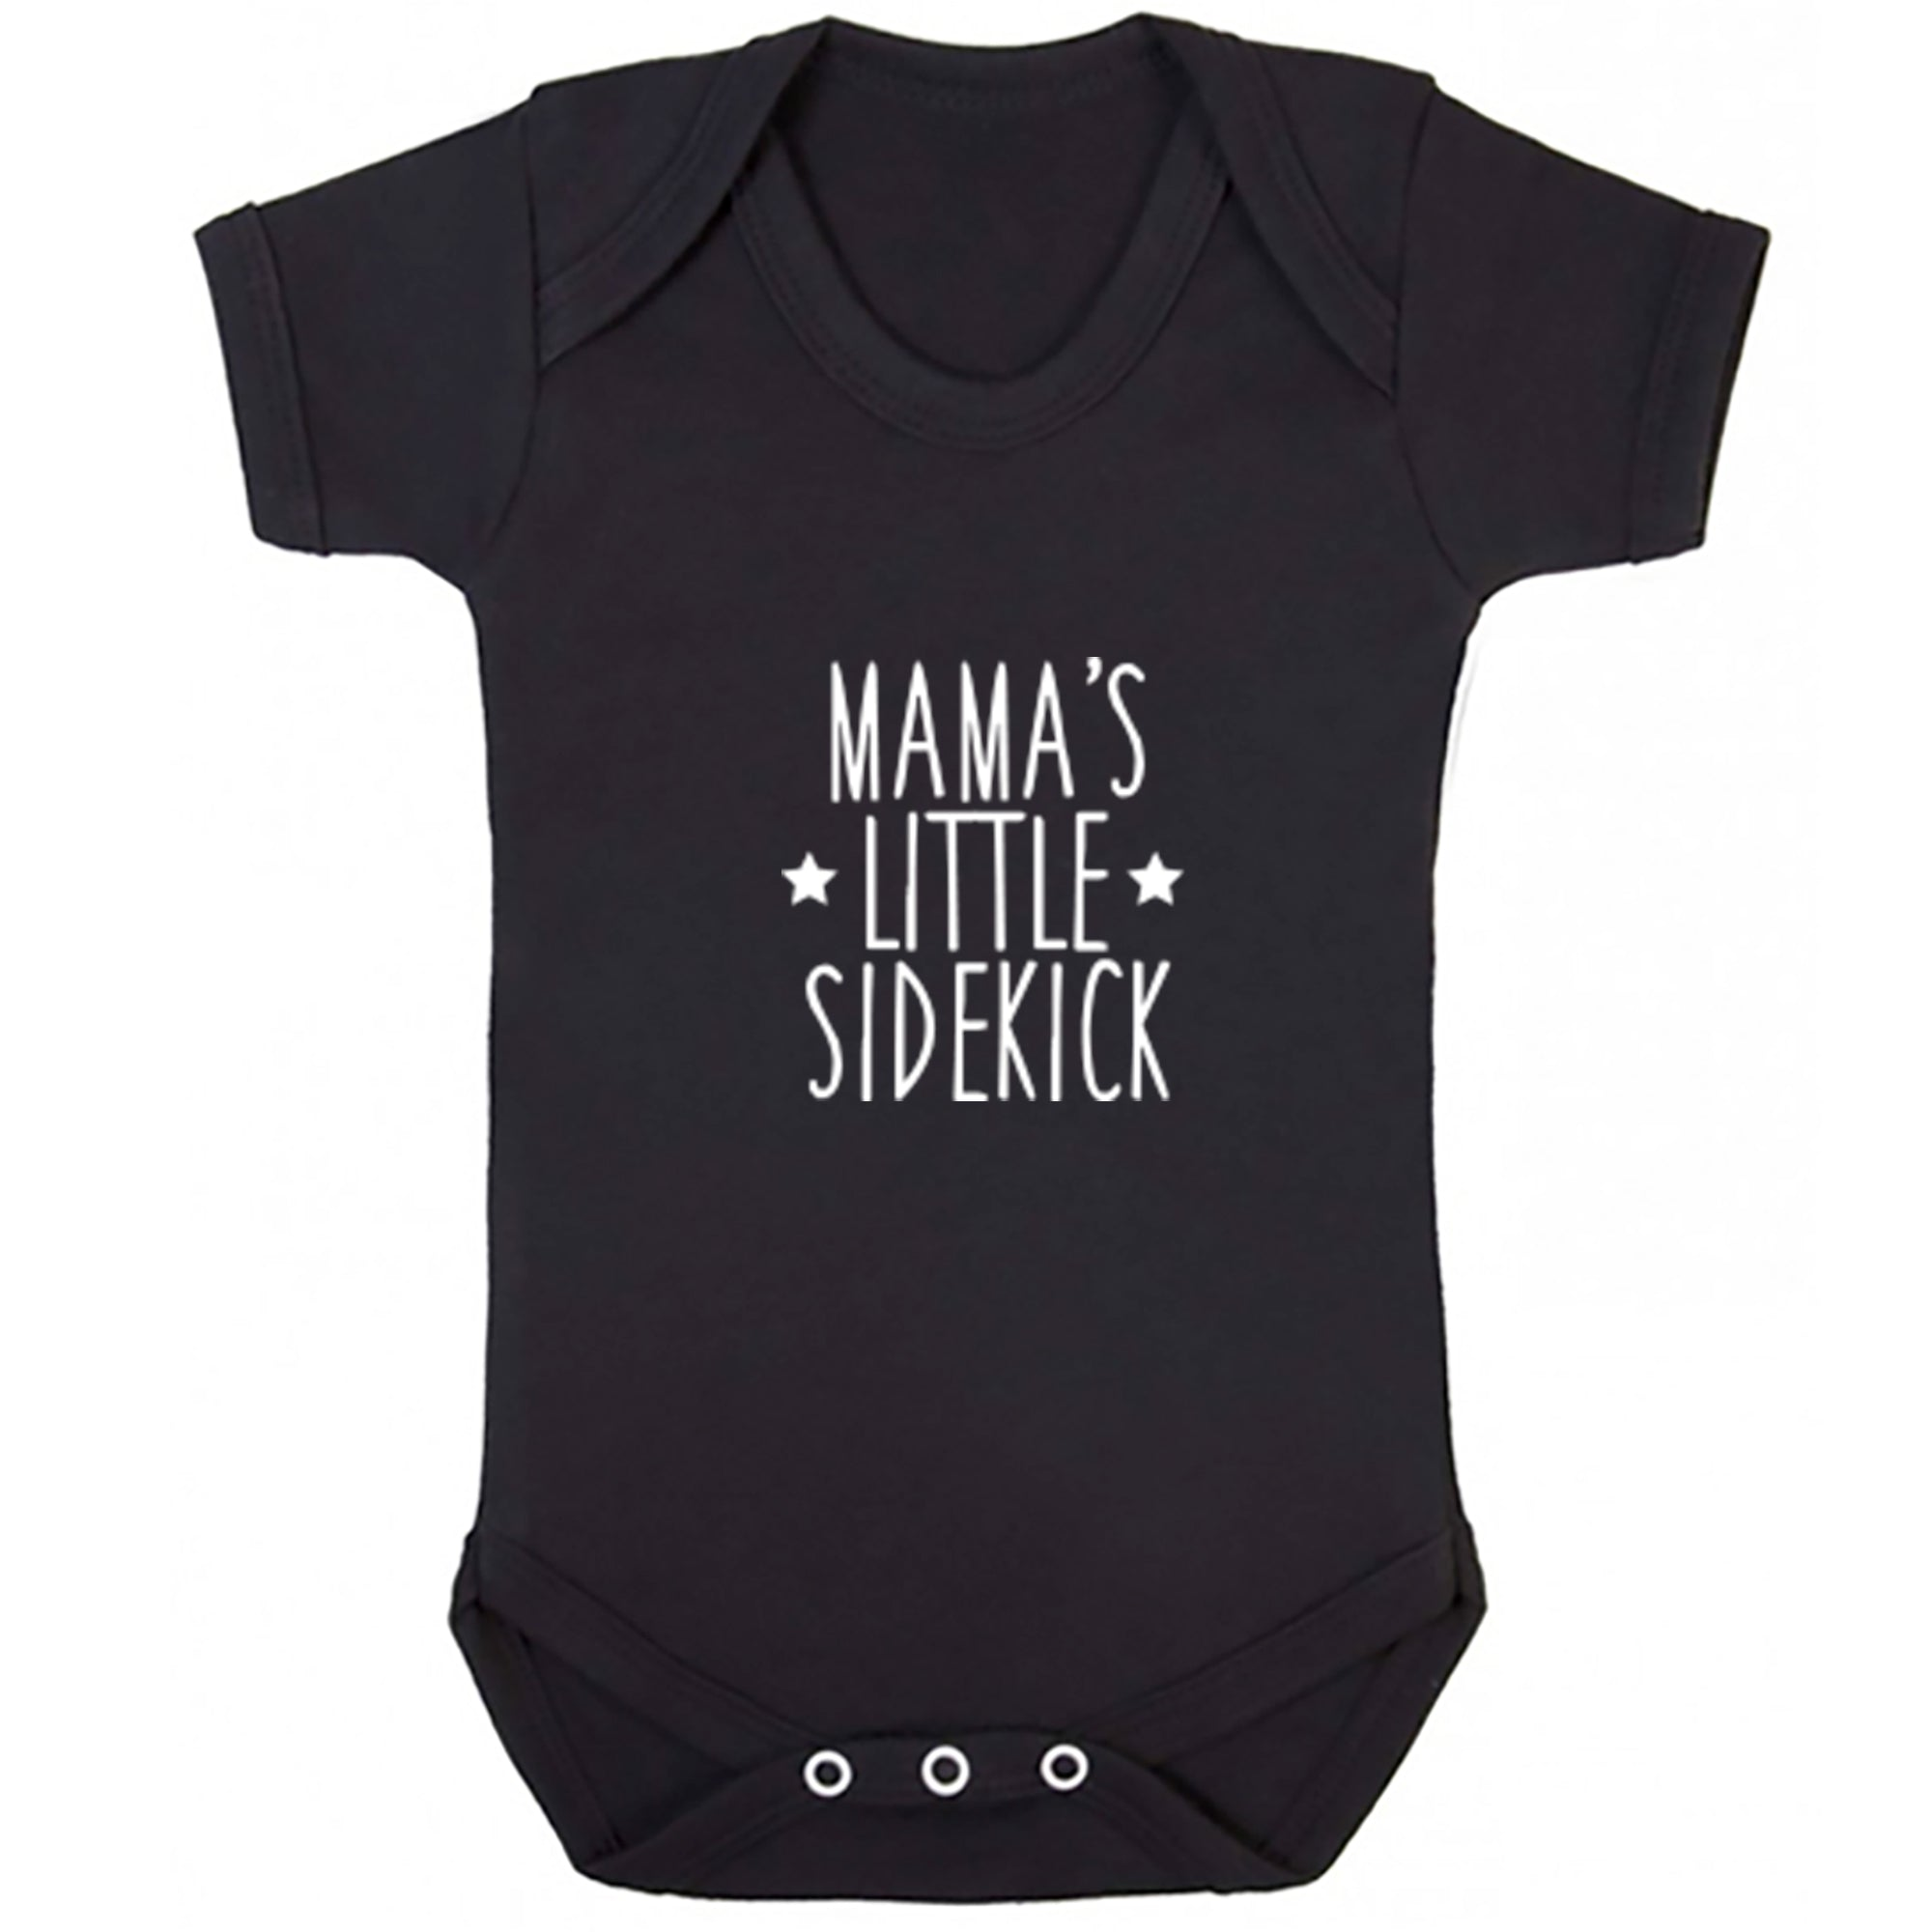 Mama's Little Sidekick Baby Vest S0902 - Illustrated Identity Ltd.